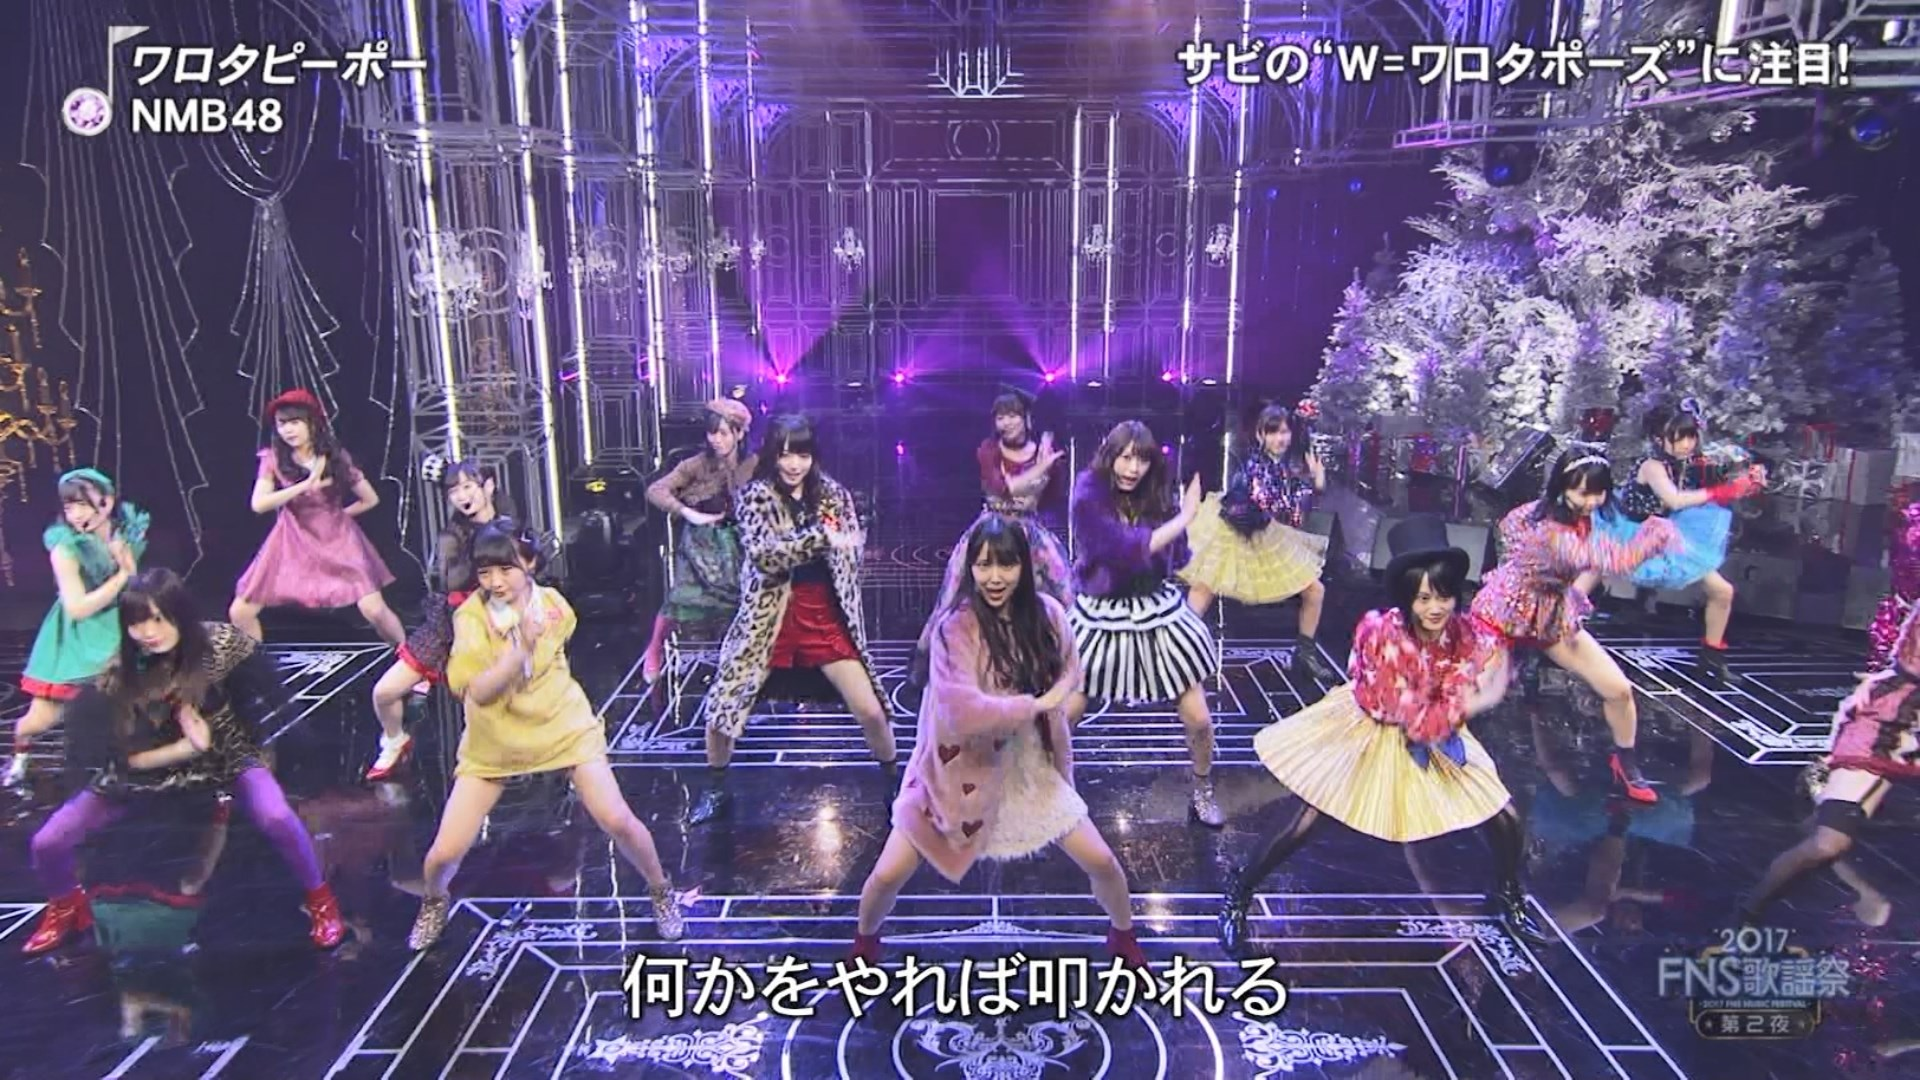 2017FNS歌謡祭第2夜・NMB48ワロタピーポーキャプ-012